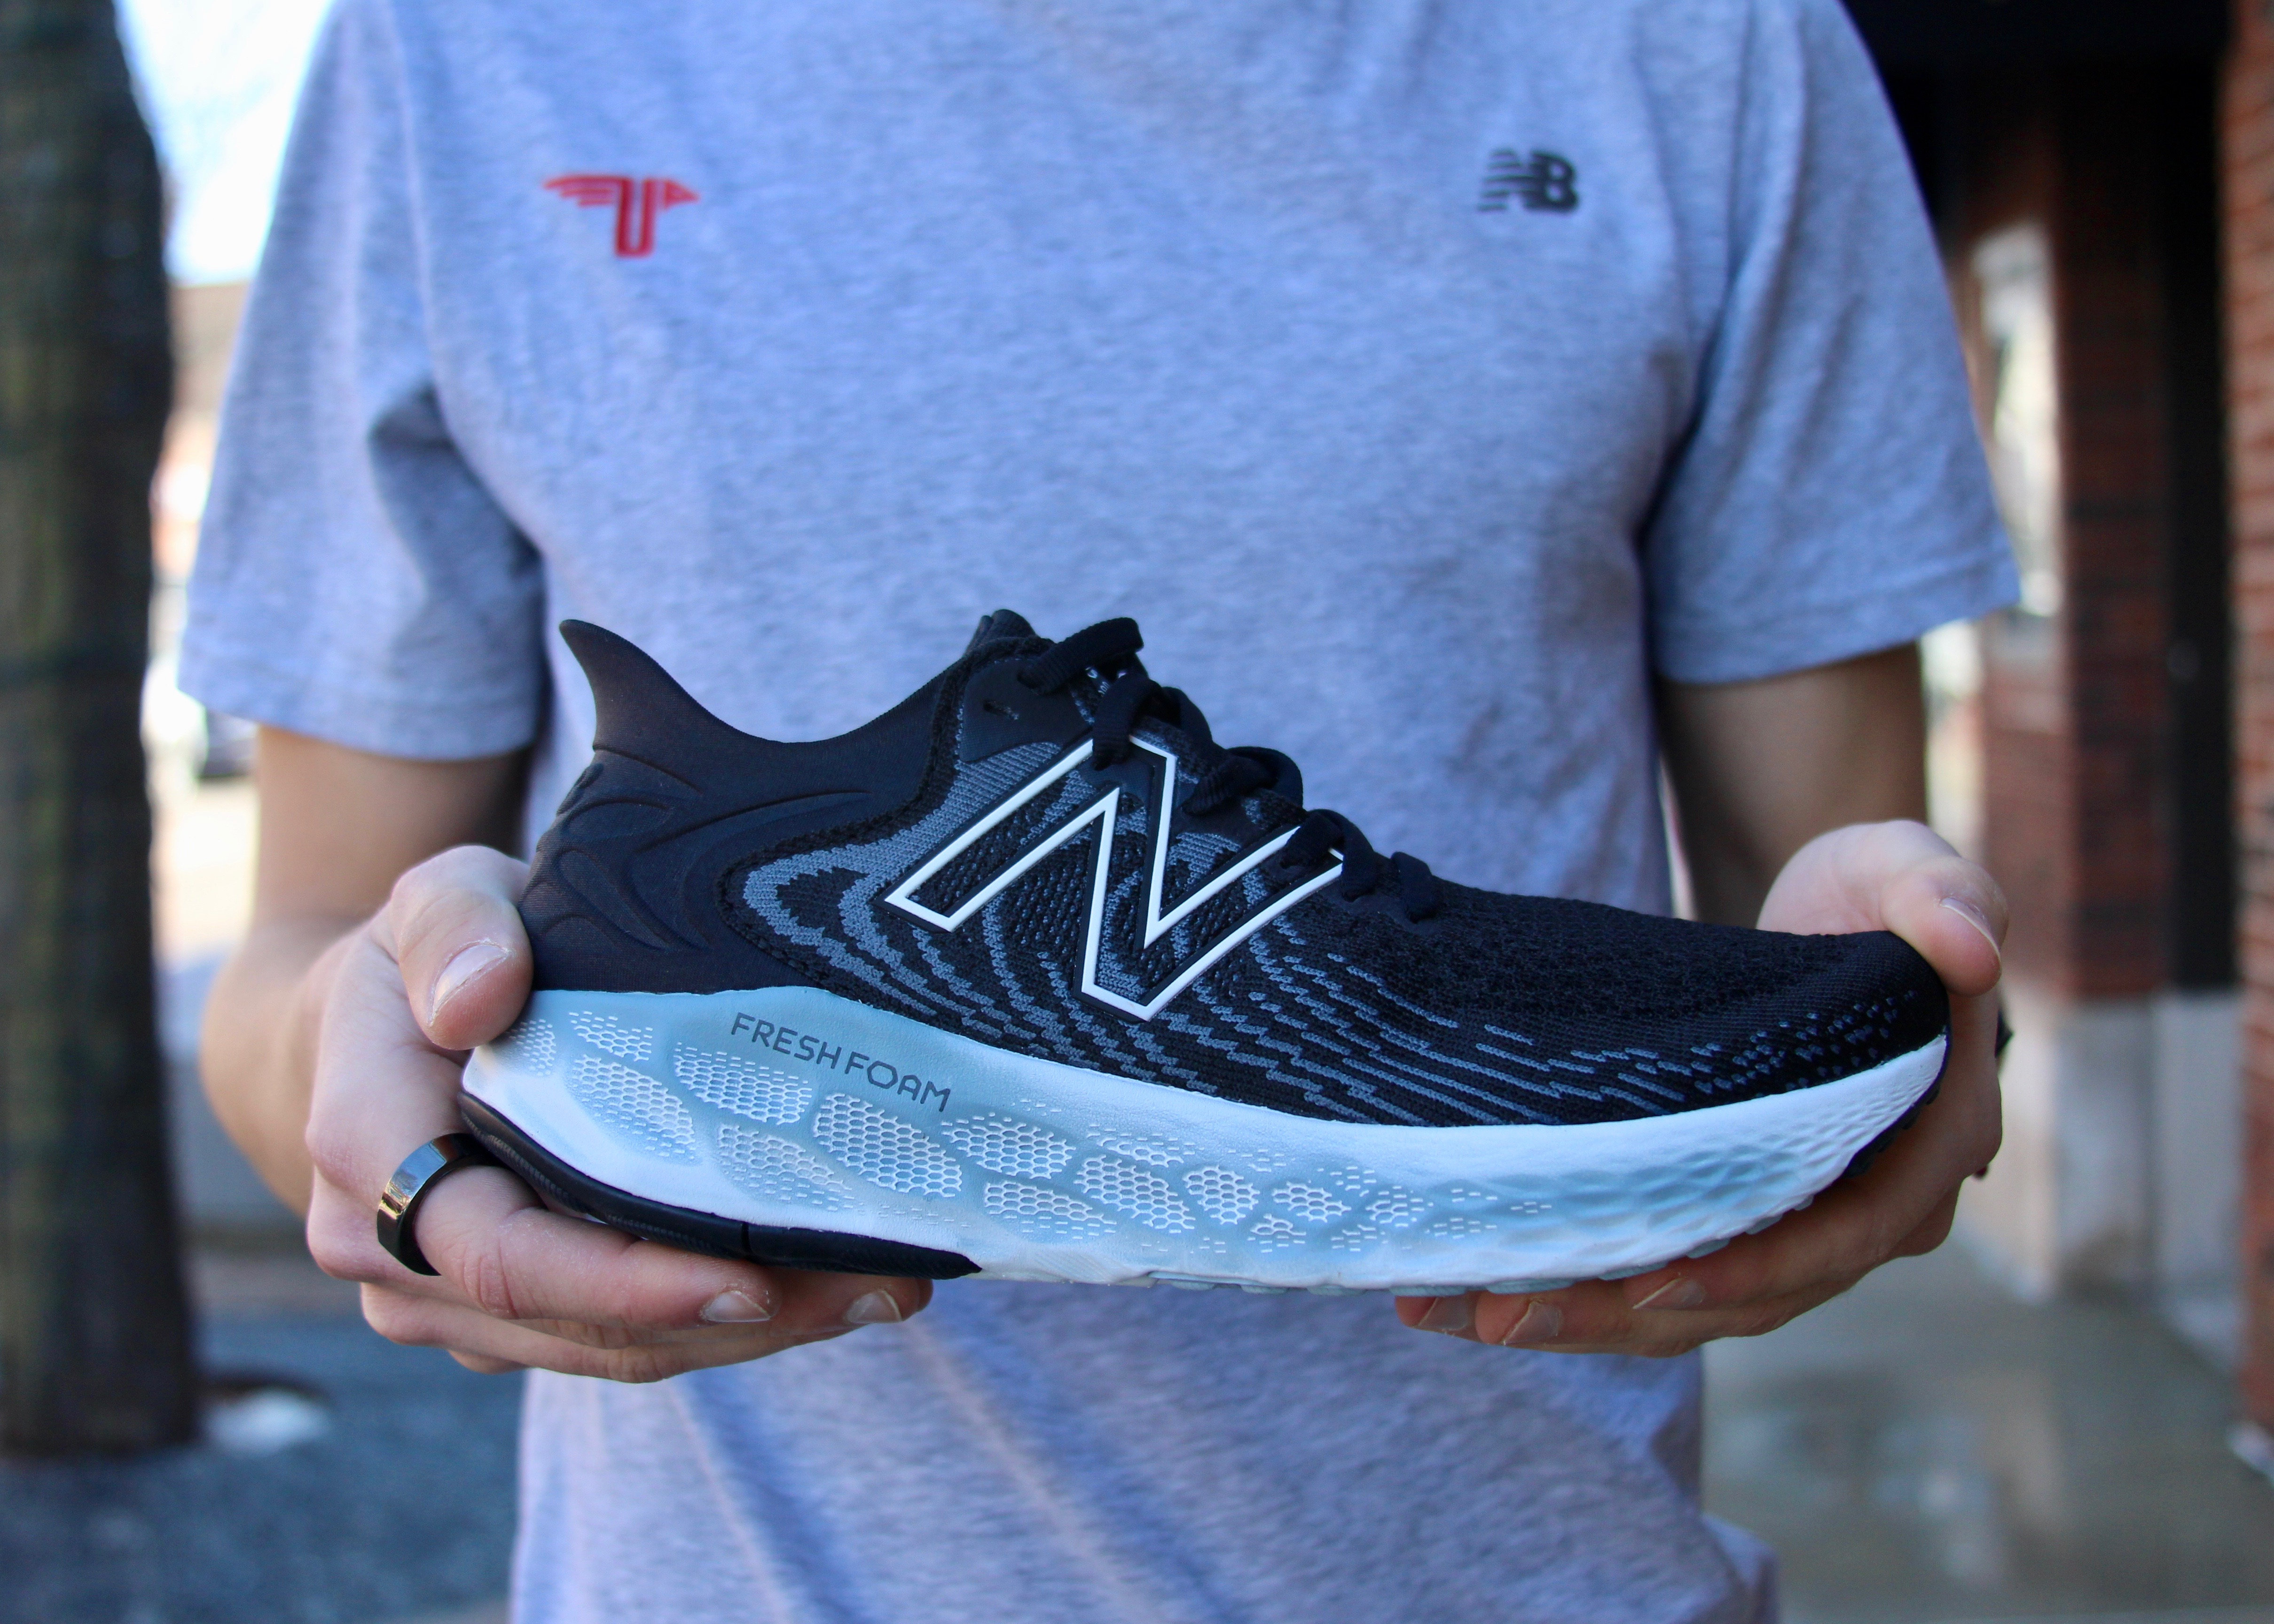 New Balance 1080v11 | Naperville Running Company | Women's Running Shoe